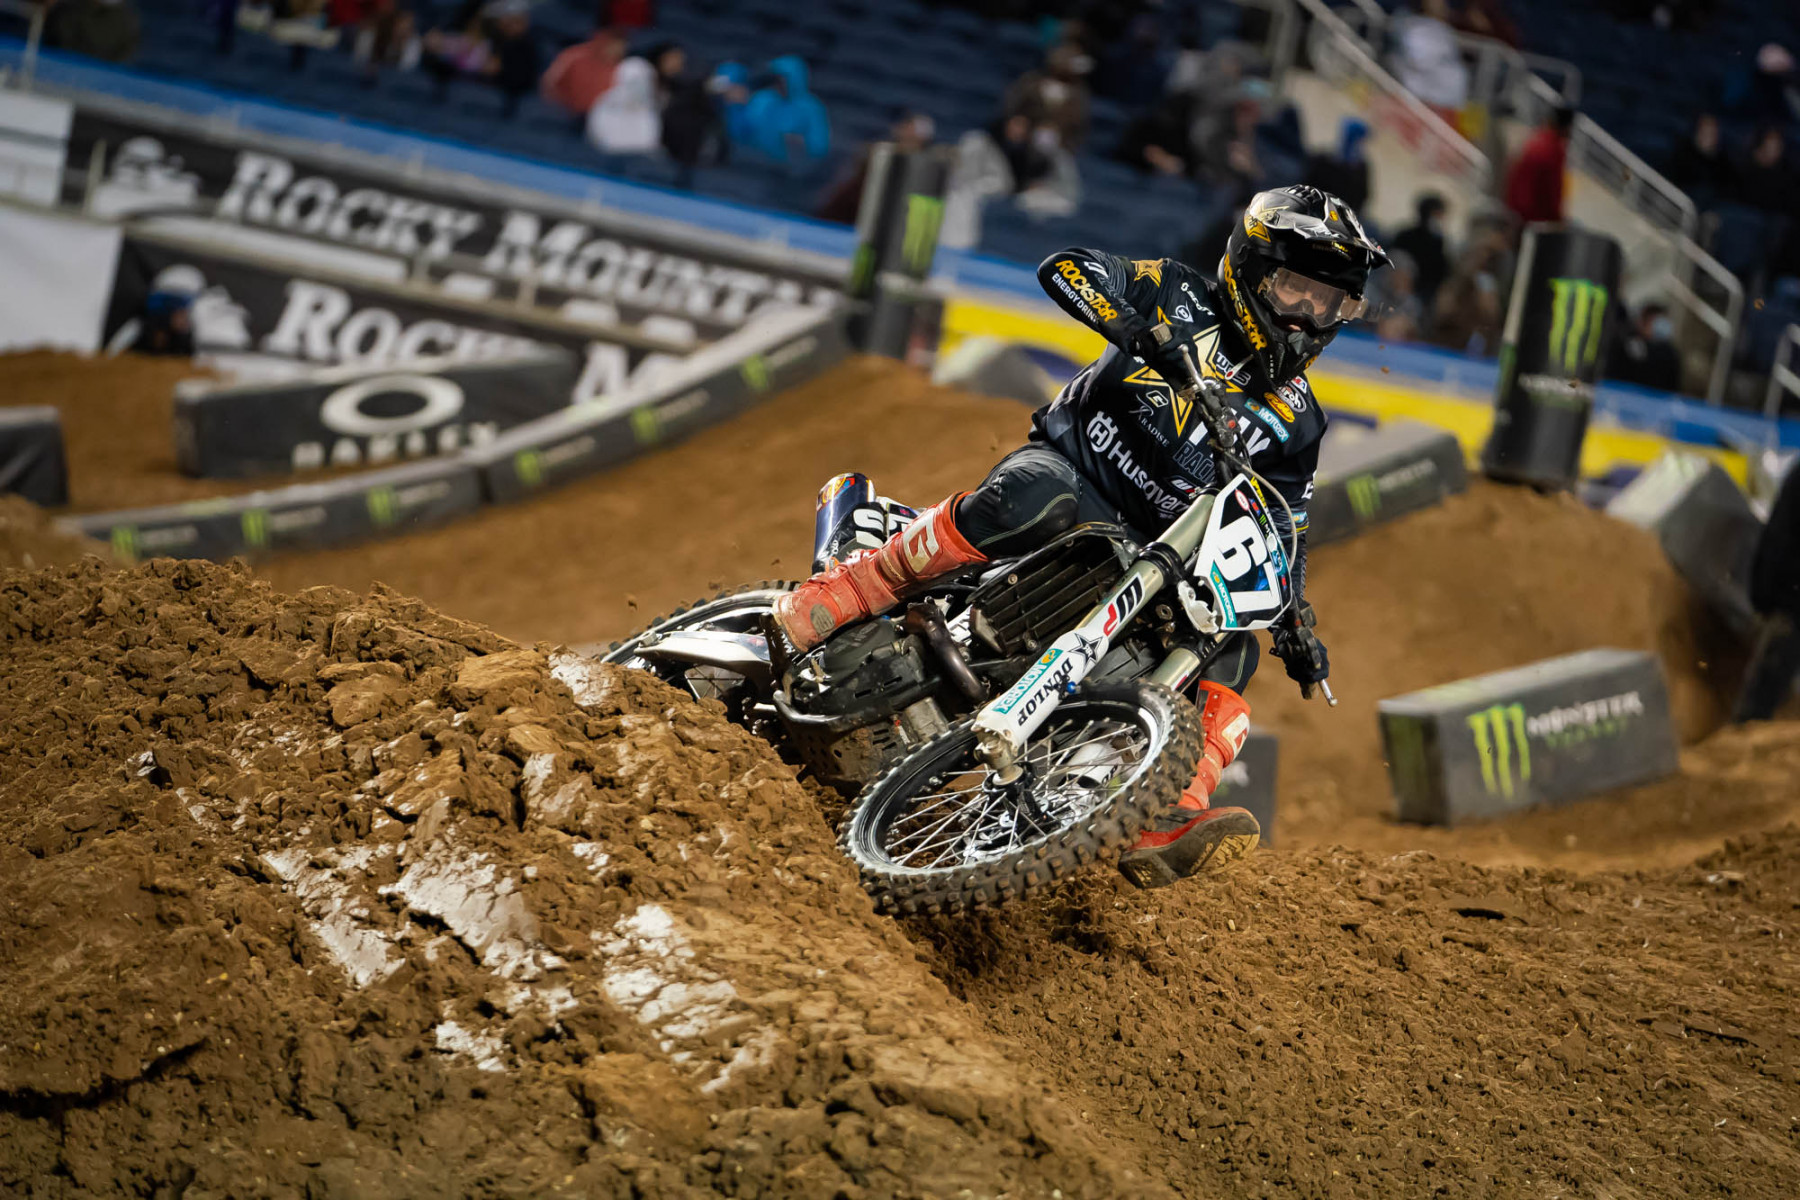 2021-ORLANDO-TWO-SUPERCROSS_KICKSTART_1551